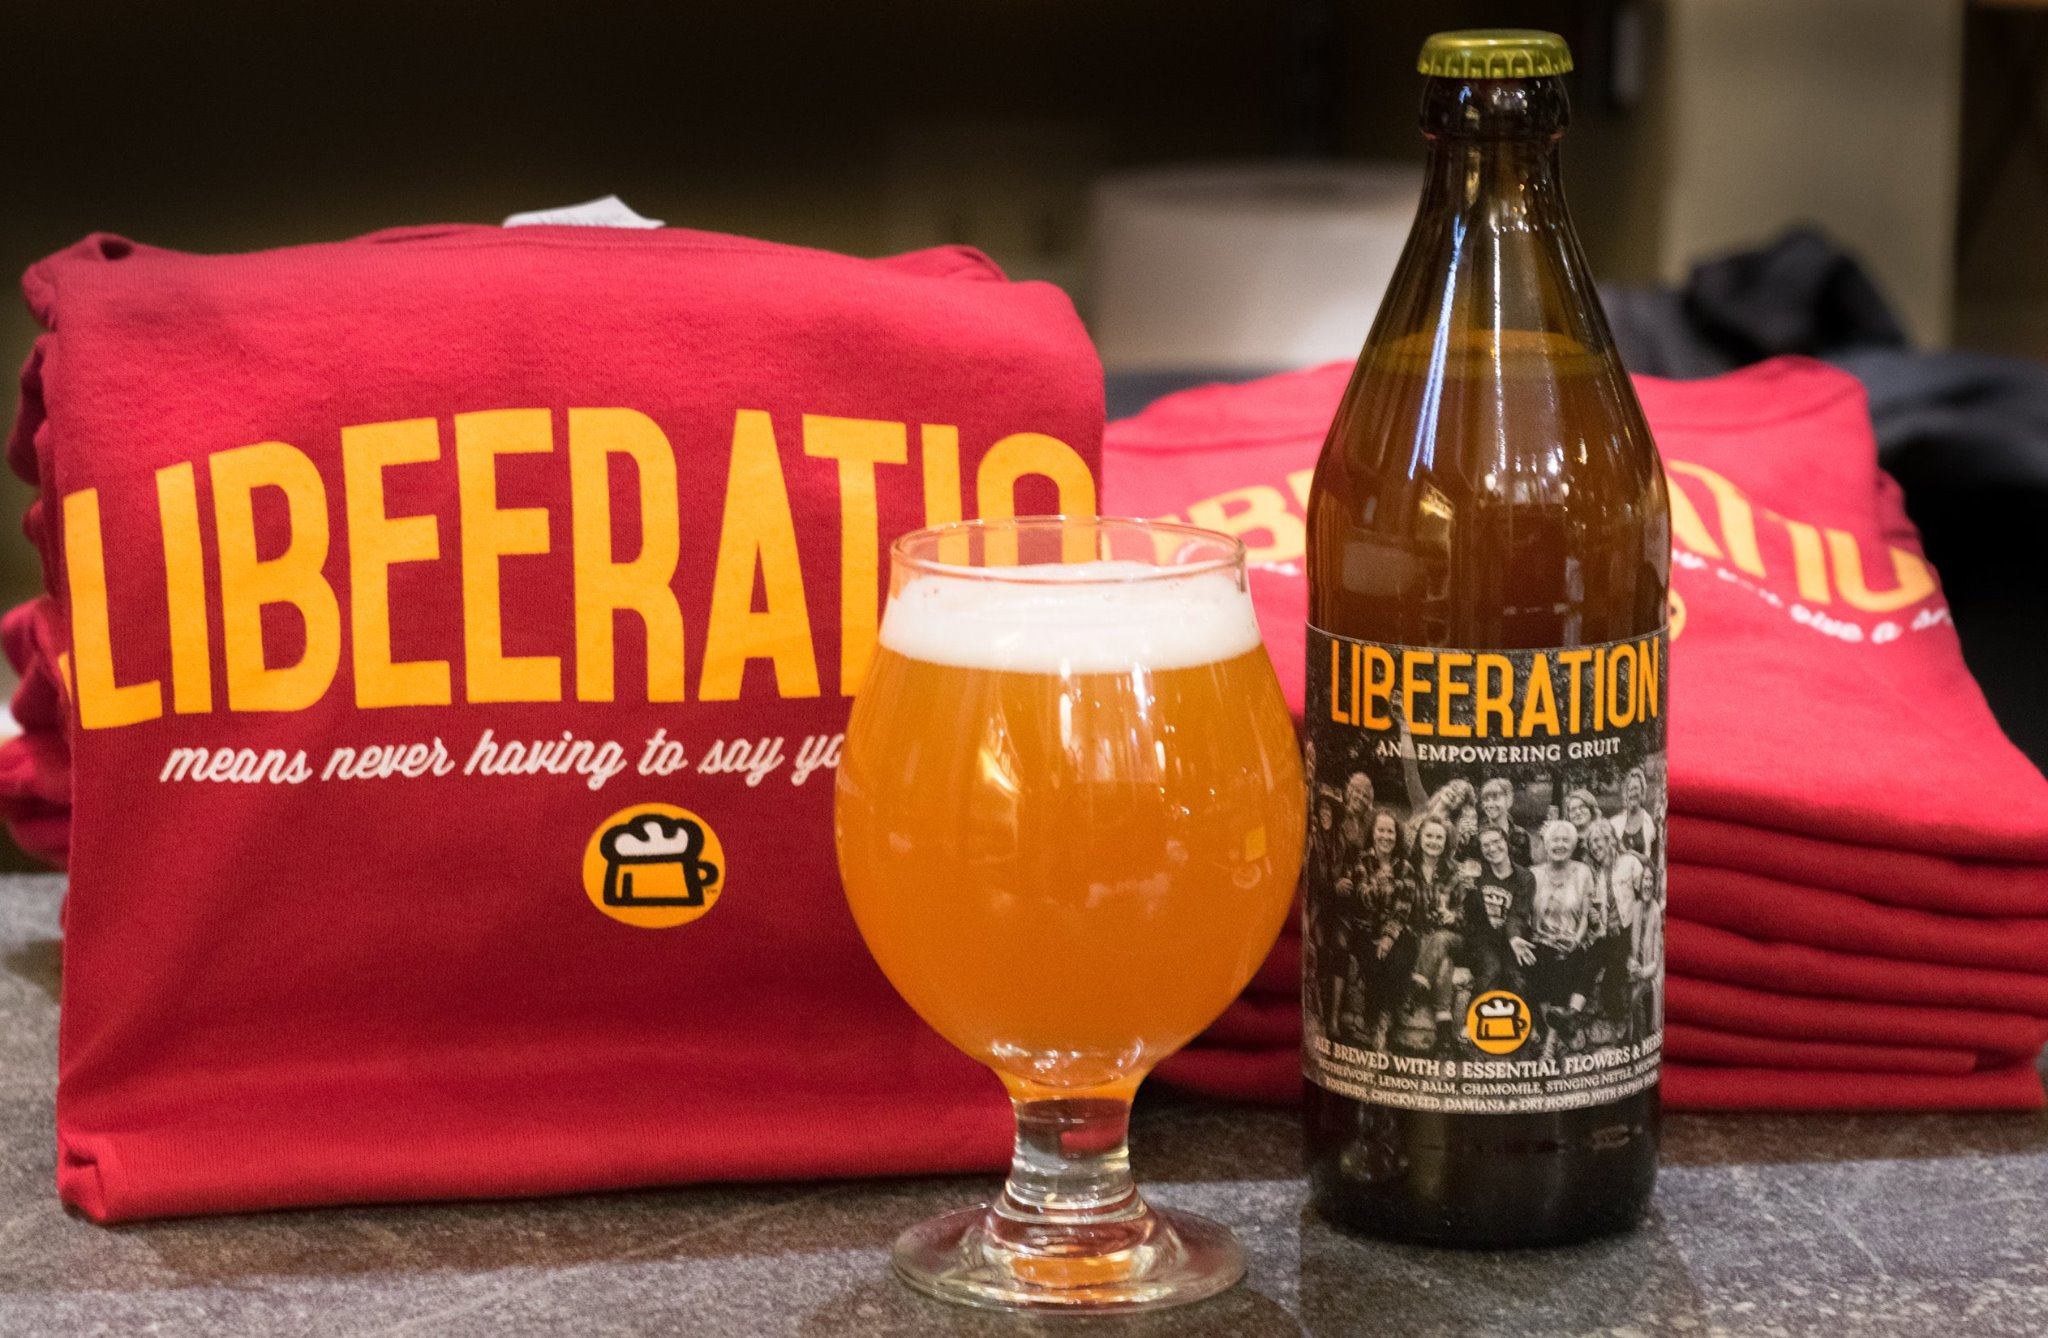 libeeration lead